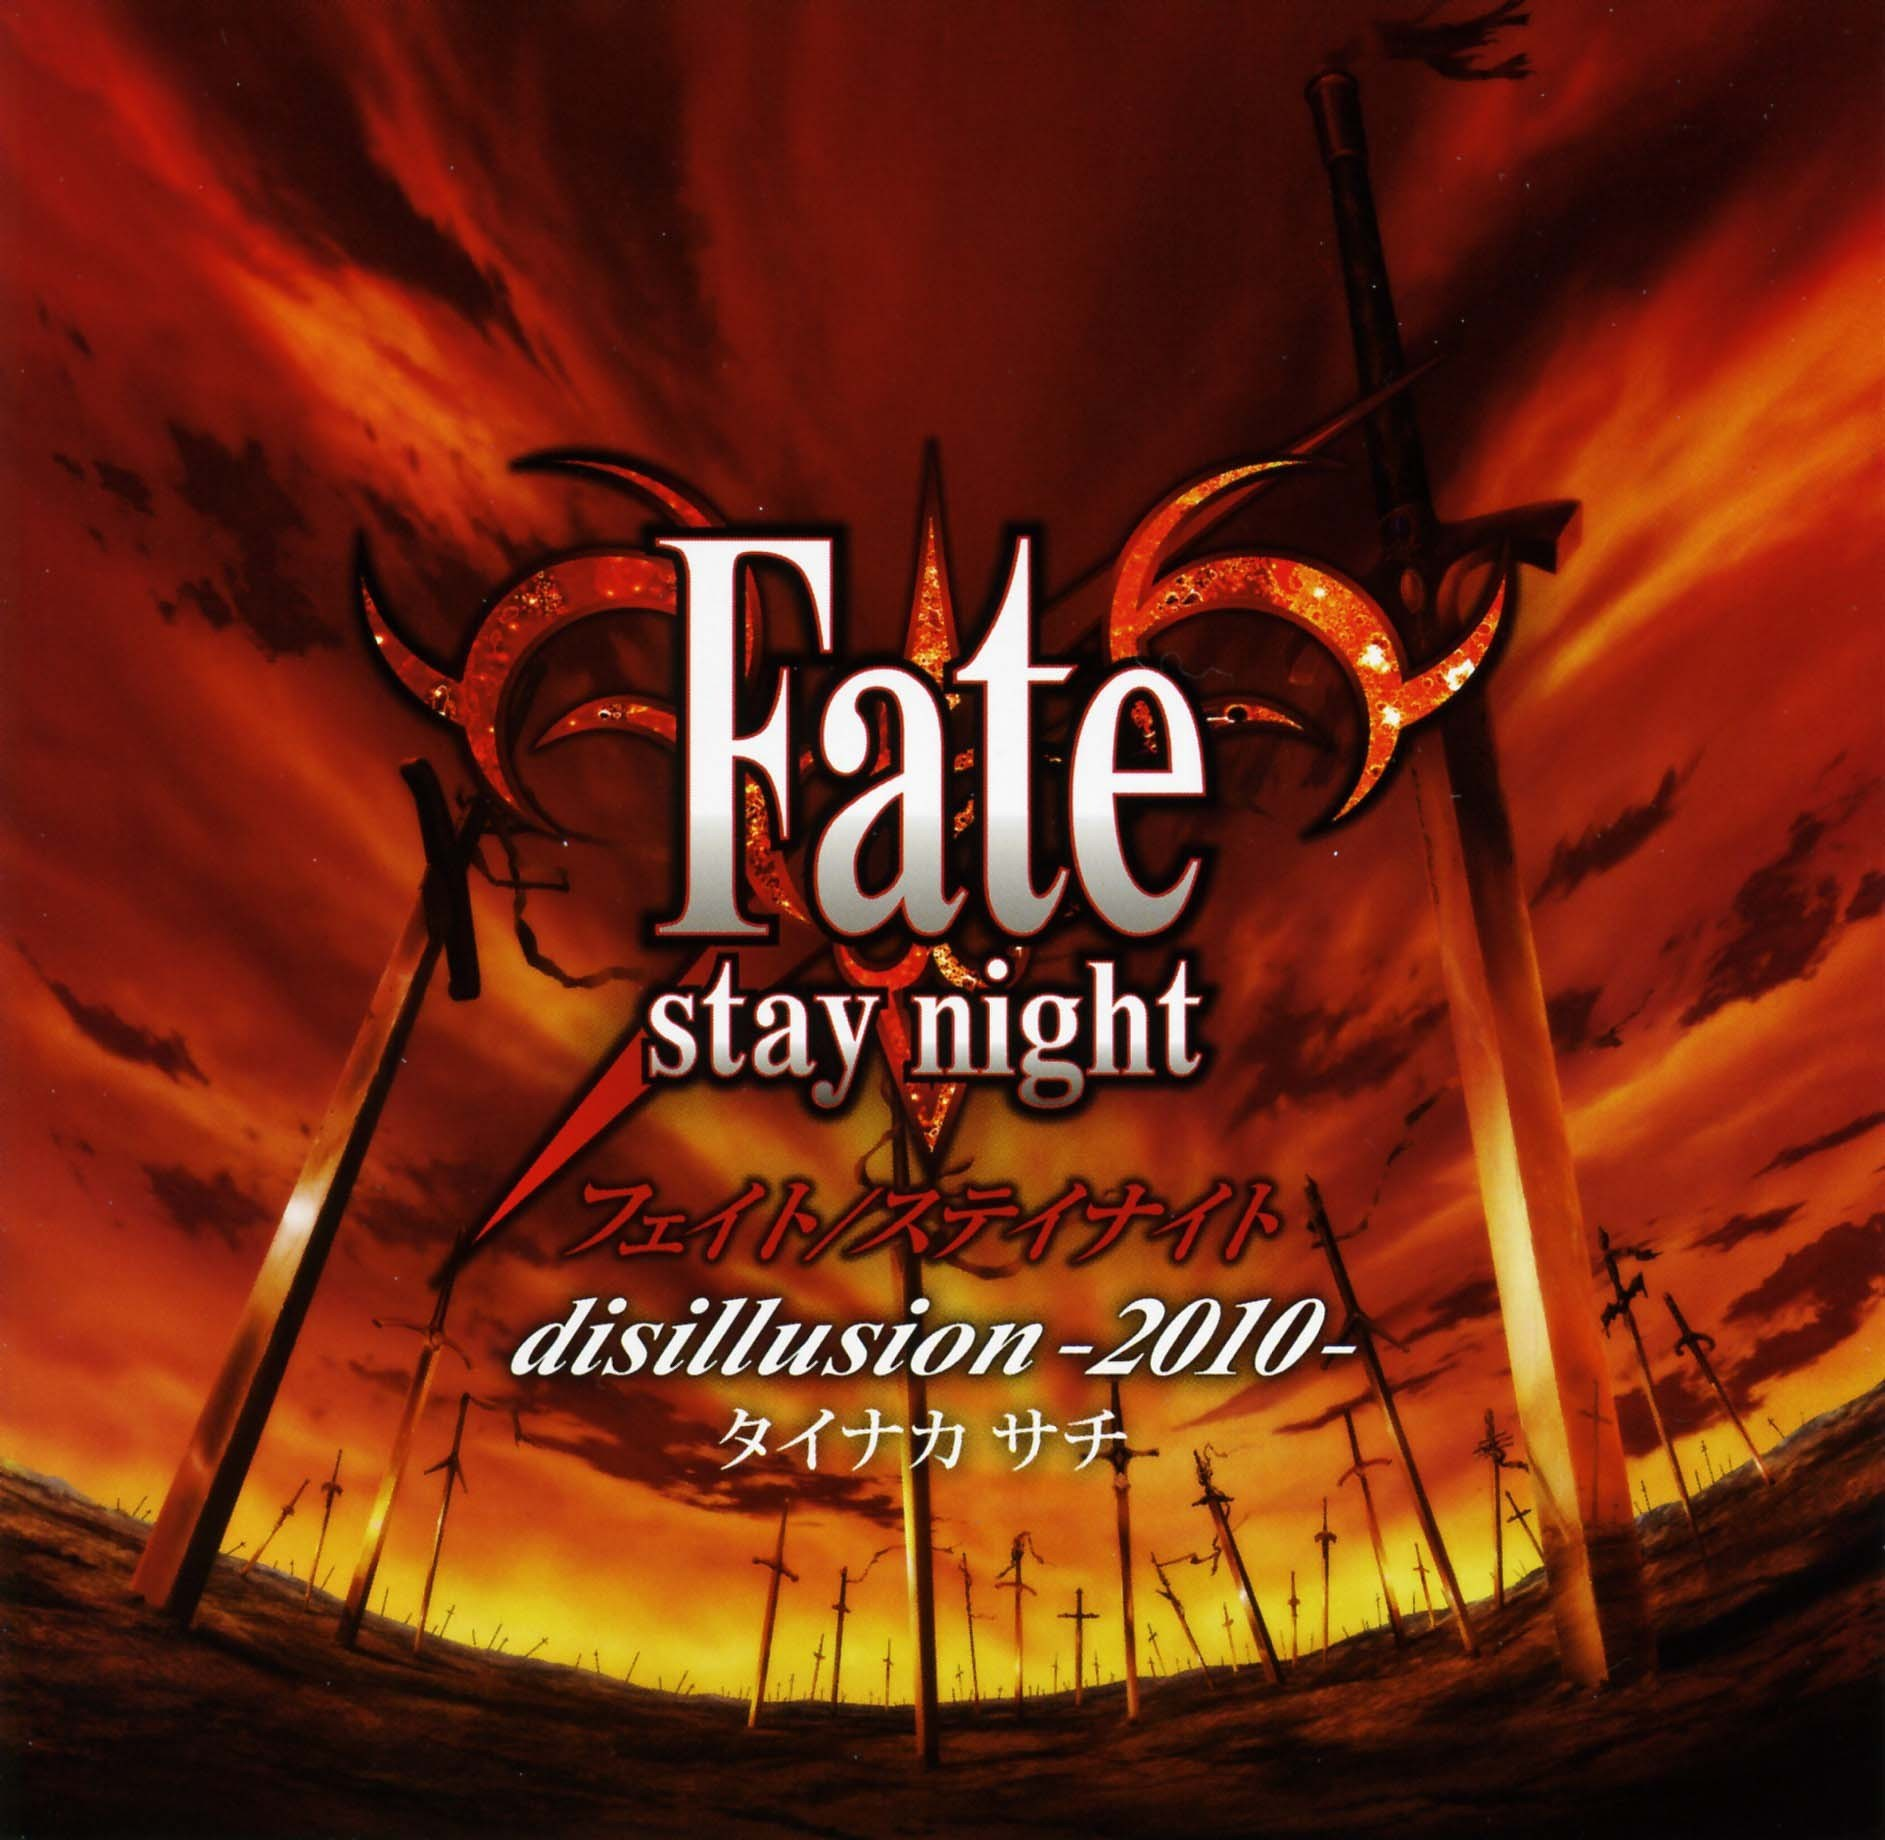 235 new ipad wallpapers. Fate Stay Night Reproduction OP- Disillusion -2010-